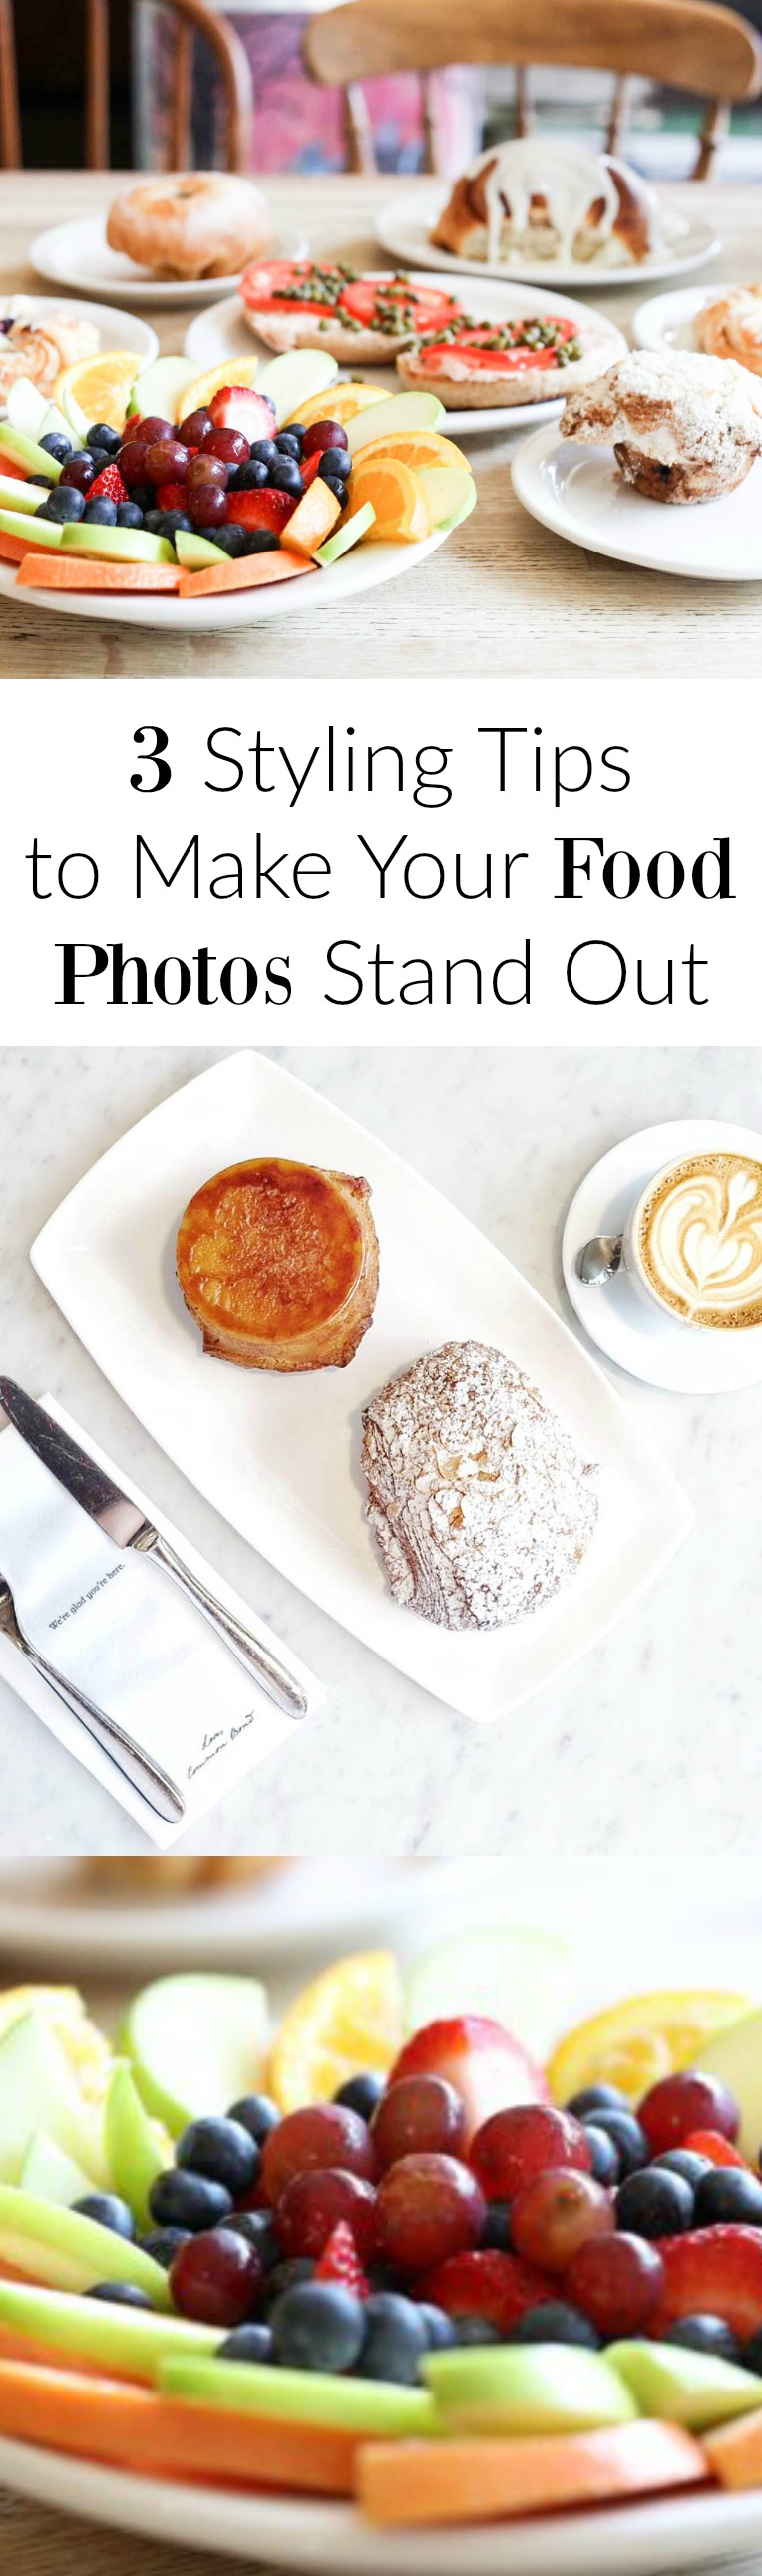 These are great tips! Easy and practical for anyone no matter what kind of camera. Food photography, photography tips, food styling.